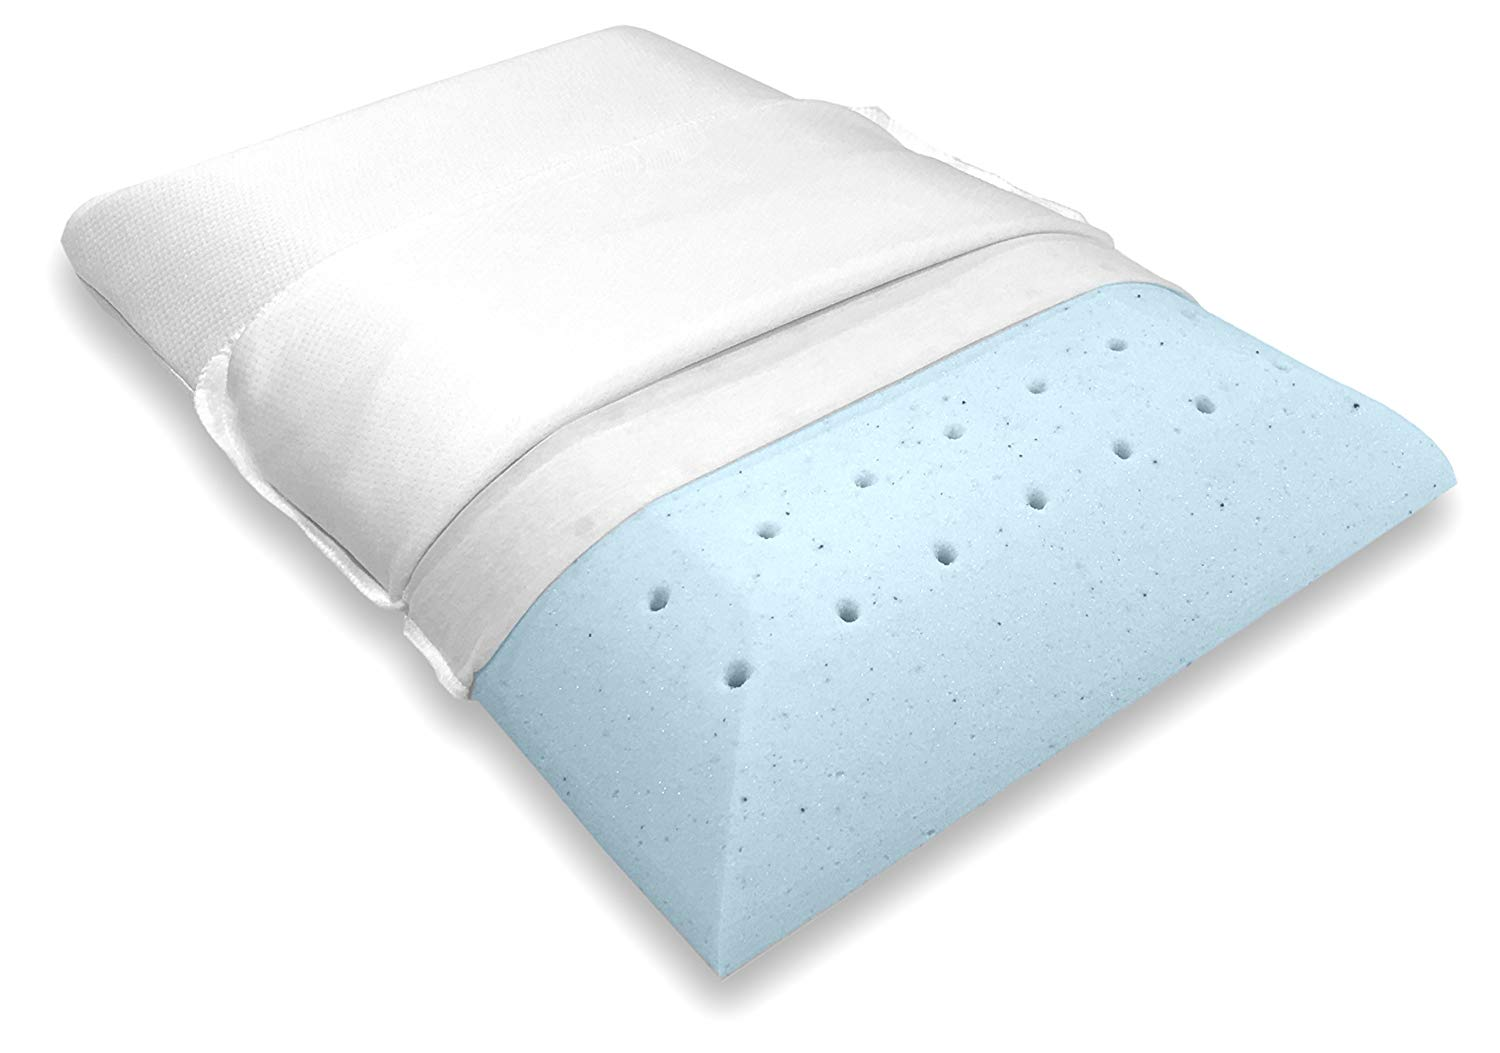 Bluewave Bedding Best Pillow For Back Sleepers Review by www.snoremagazine.com